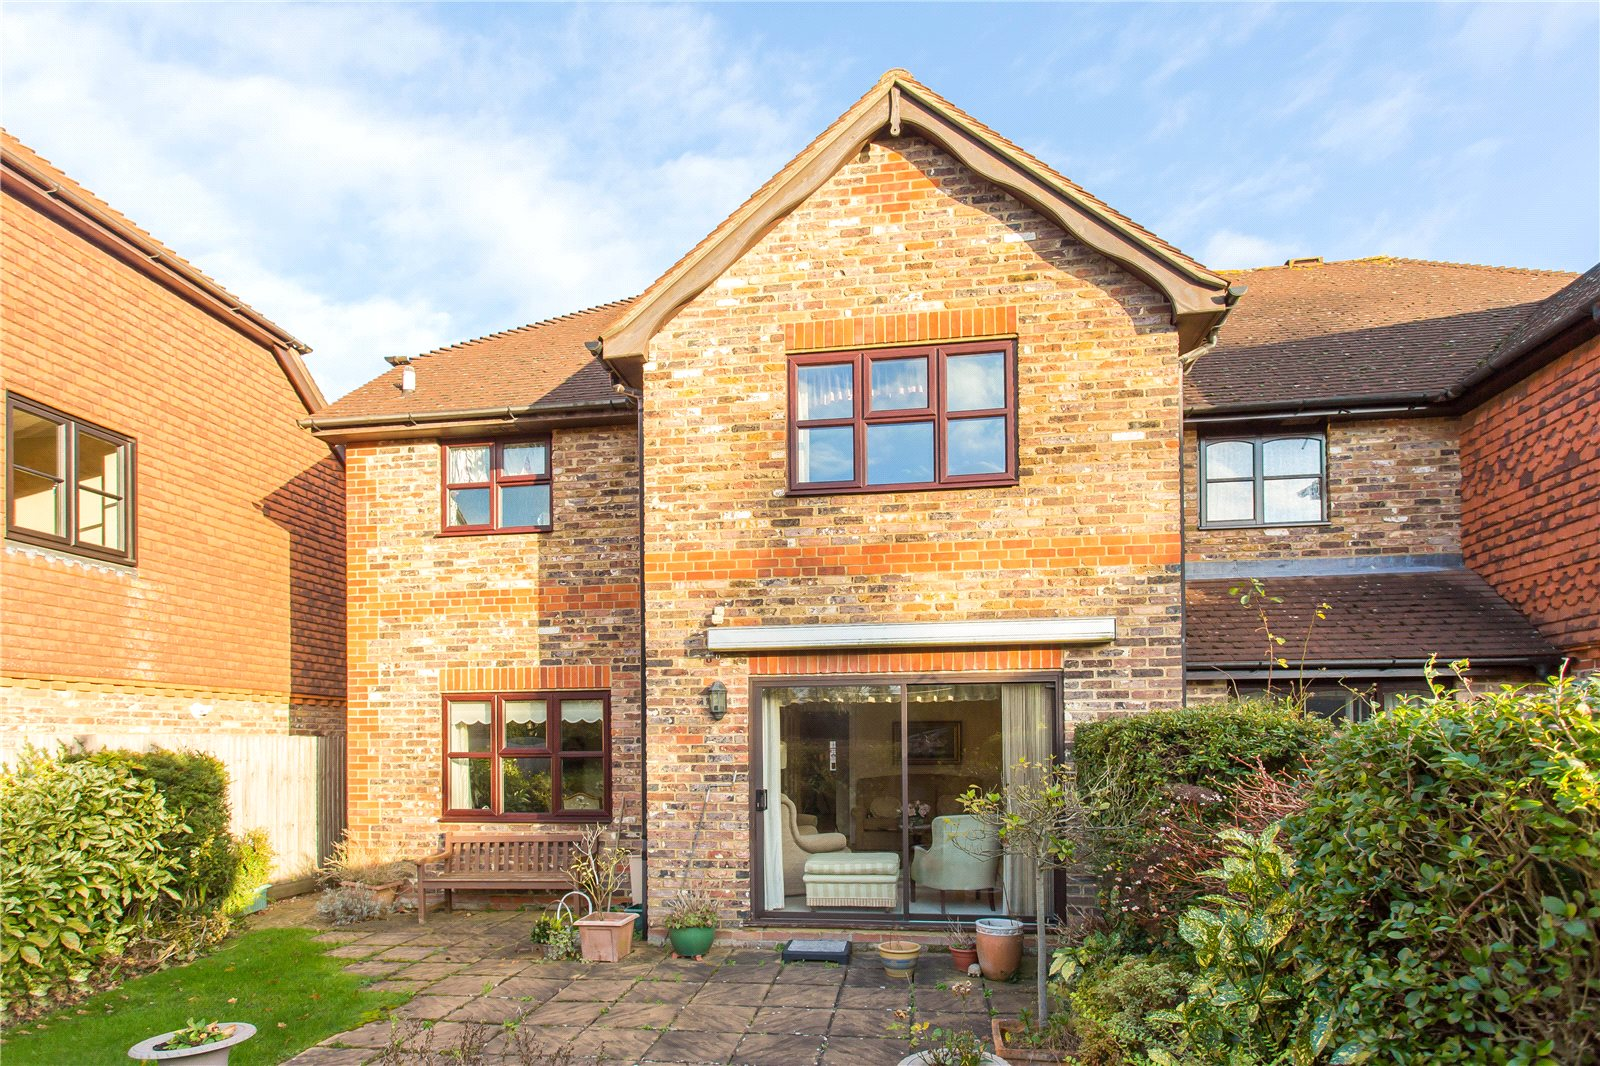 Additional photo for property listing at Miller Place, Gerrards Cross, Buckinghamshire, SL9 Gerrards Cross, Ingiltere